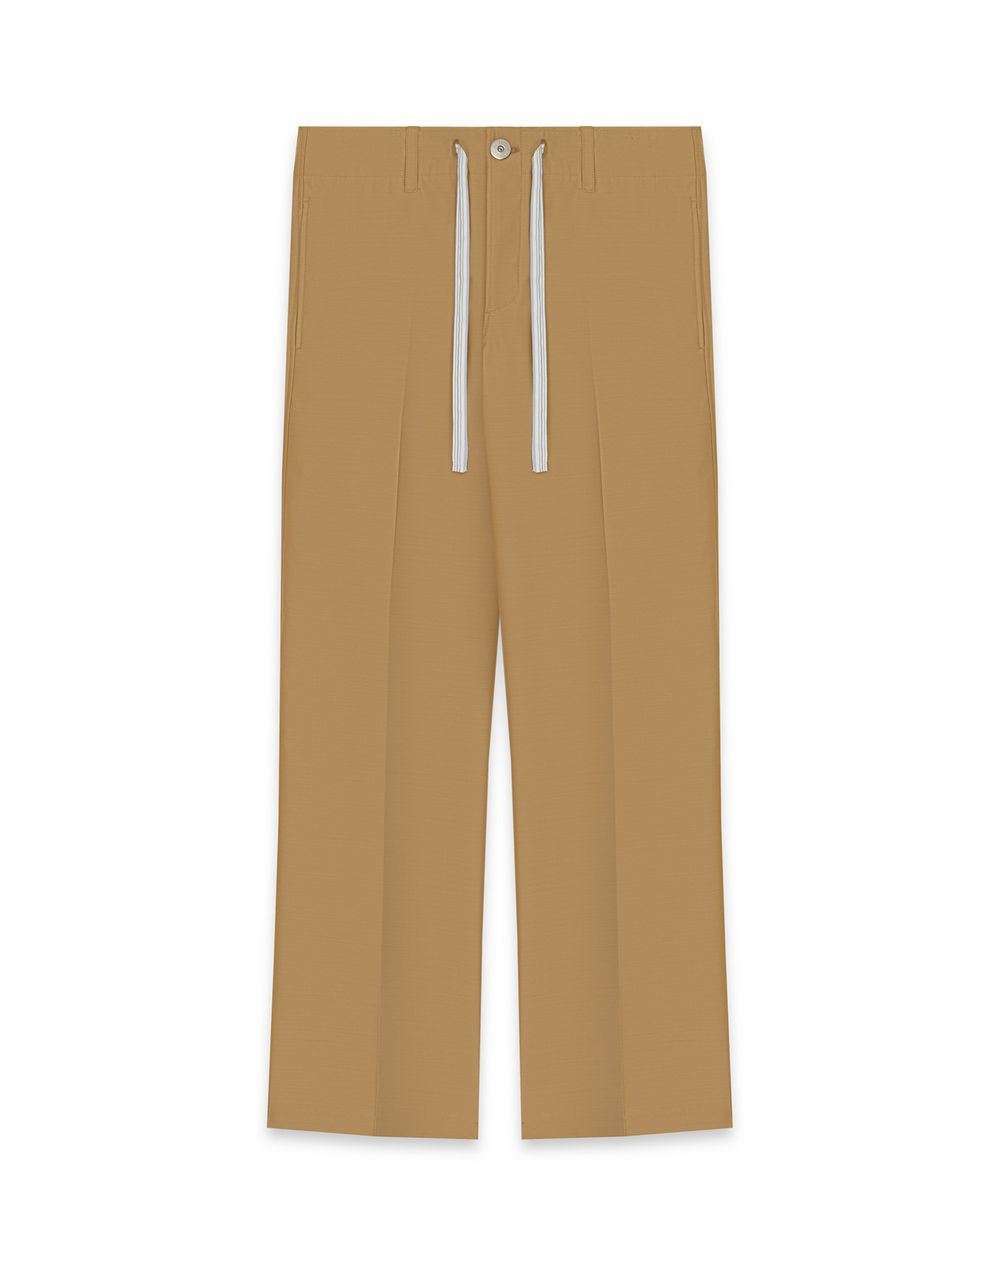 STRAIGHT WOOL PANTS - Lanvin